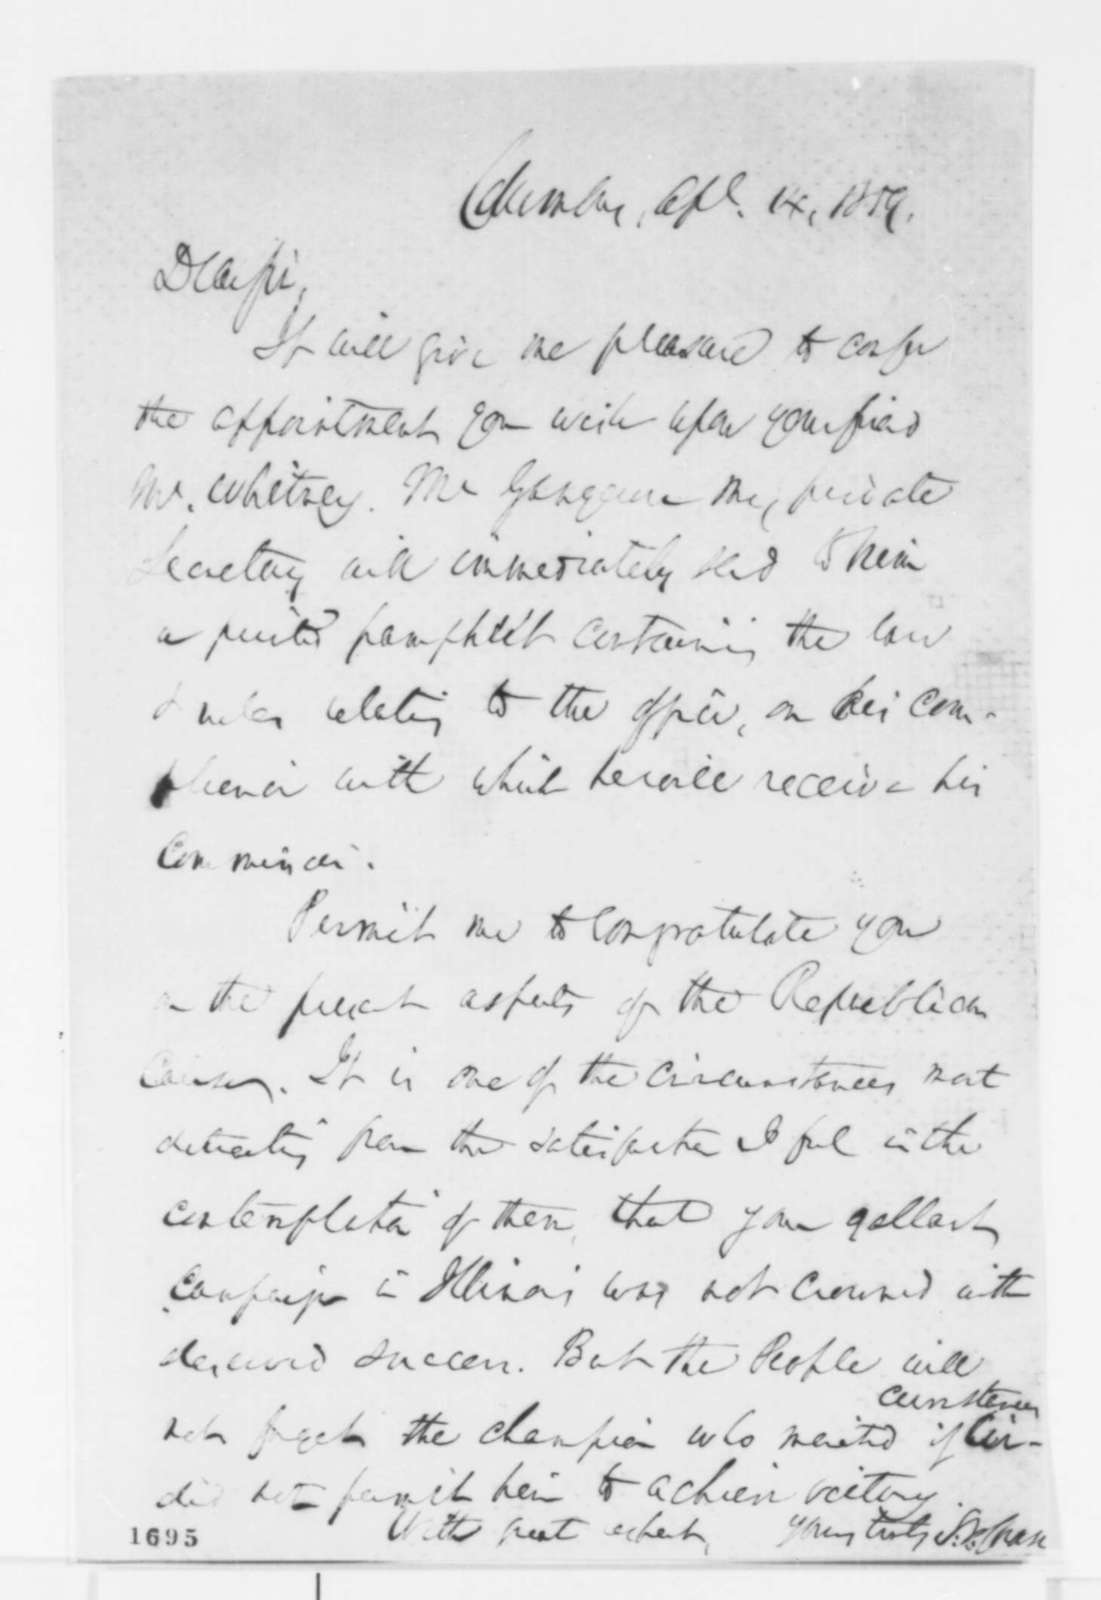 Salmon P. Chase to Abraham Lincoln, Thursday, April 14, 1859